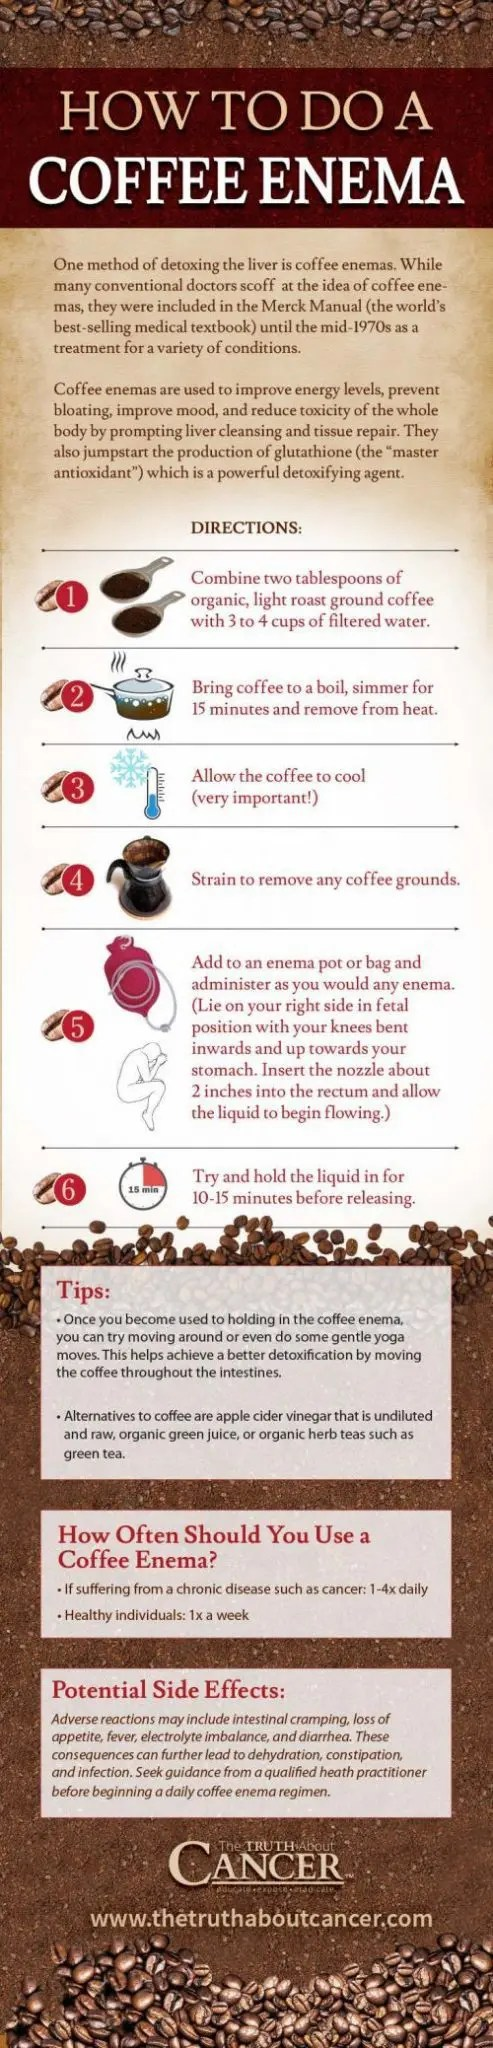 How-to-Do-a-Coffee-Enema - El Paso Chiropractor